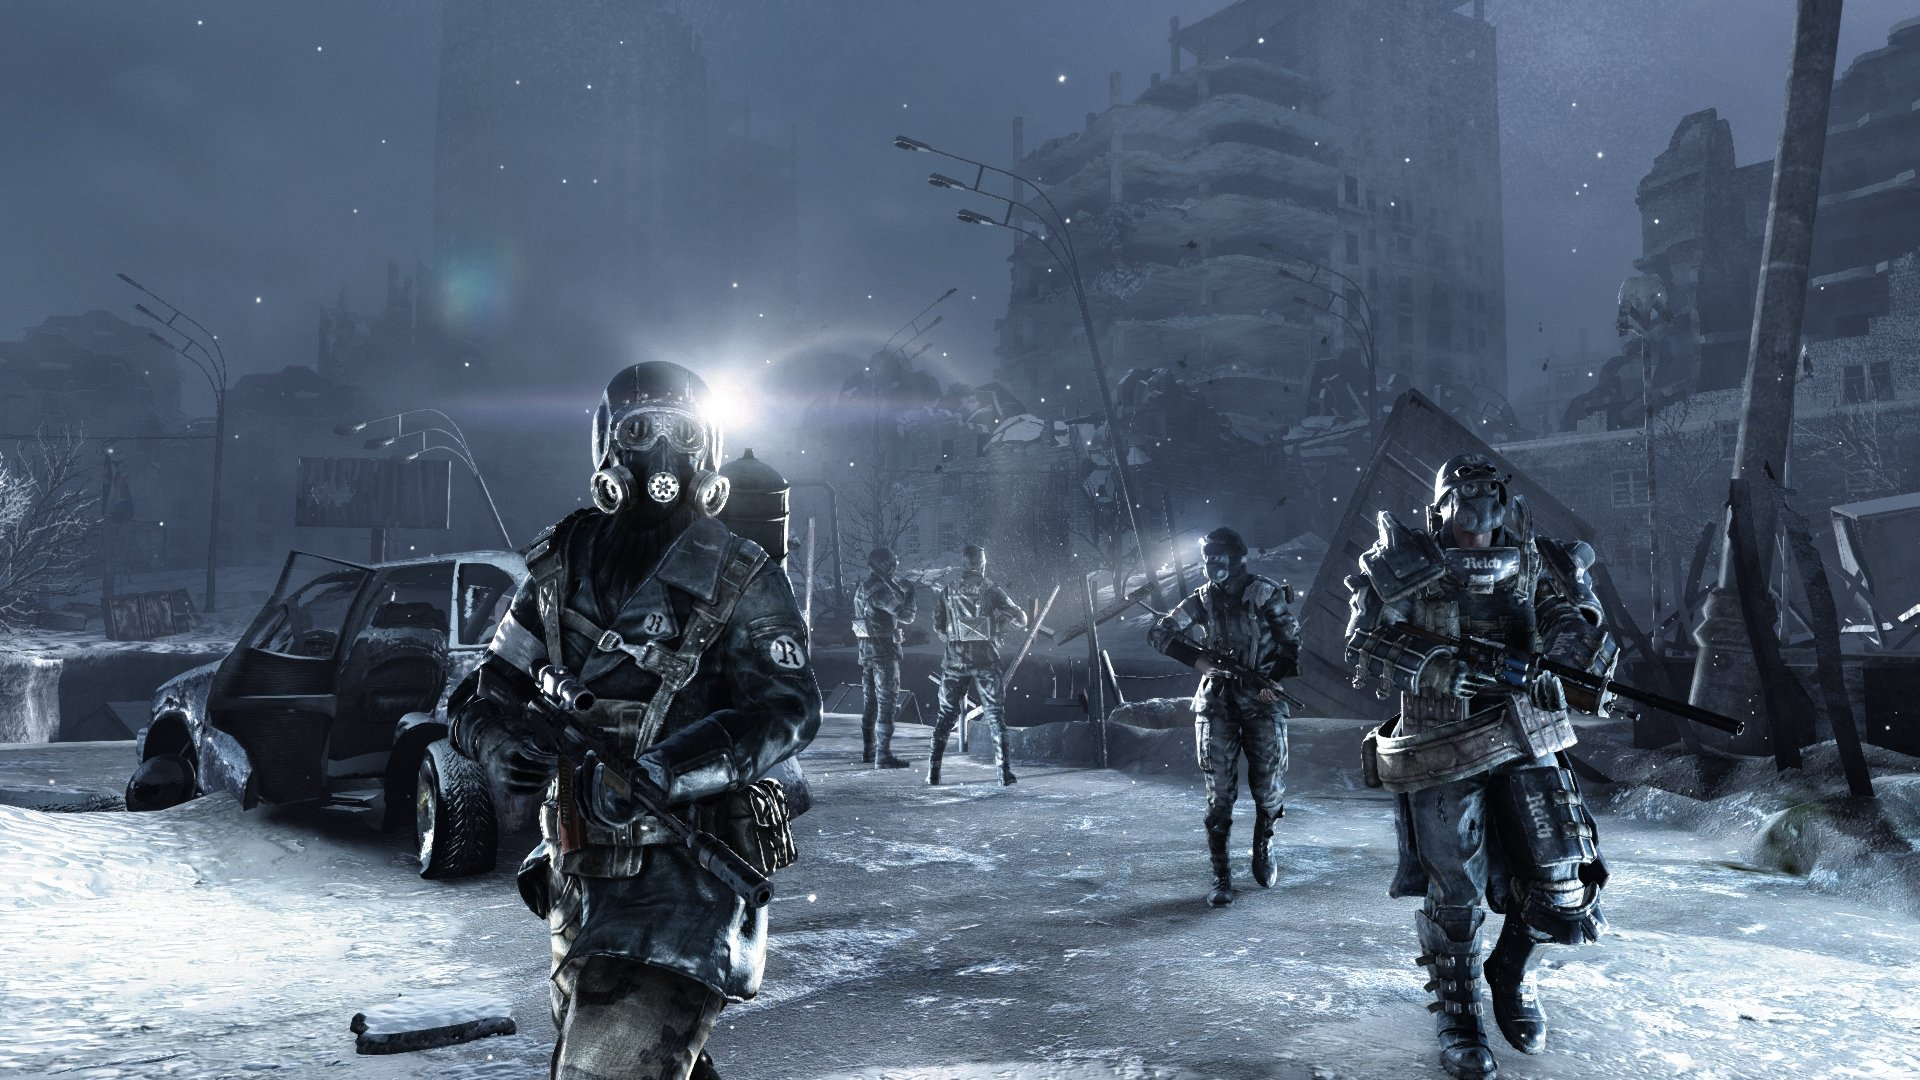 Add some bleak, depressing hostility to your life with a free copy of Metro 2033 from Epic screenshot